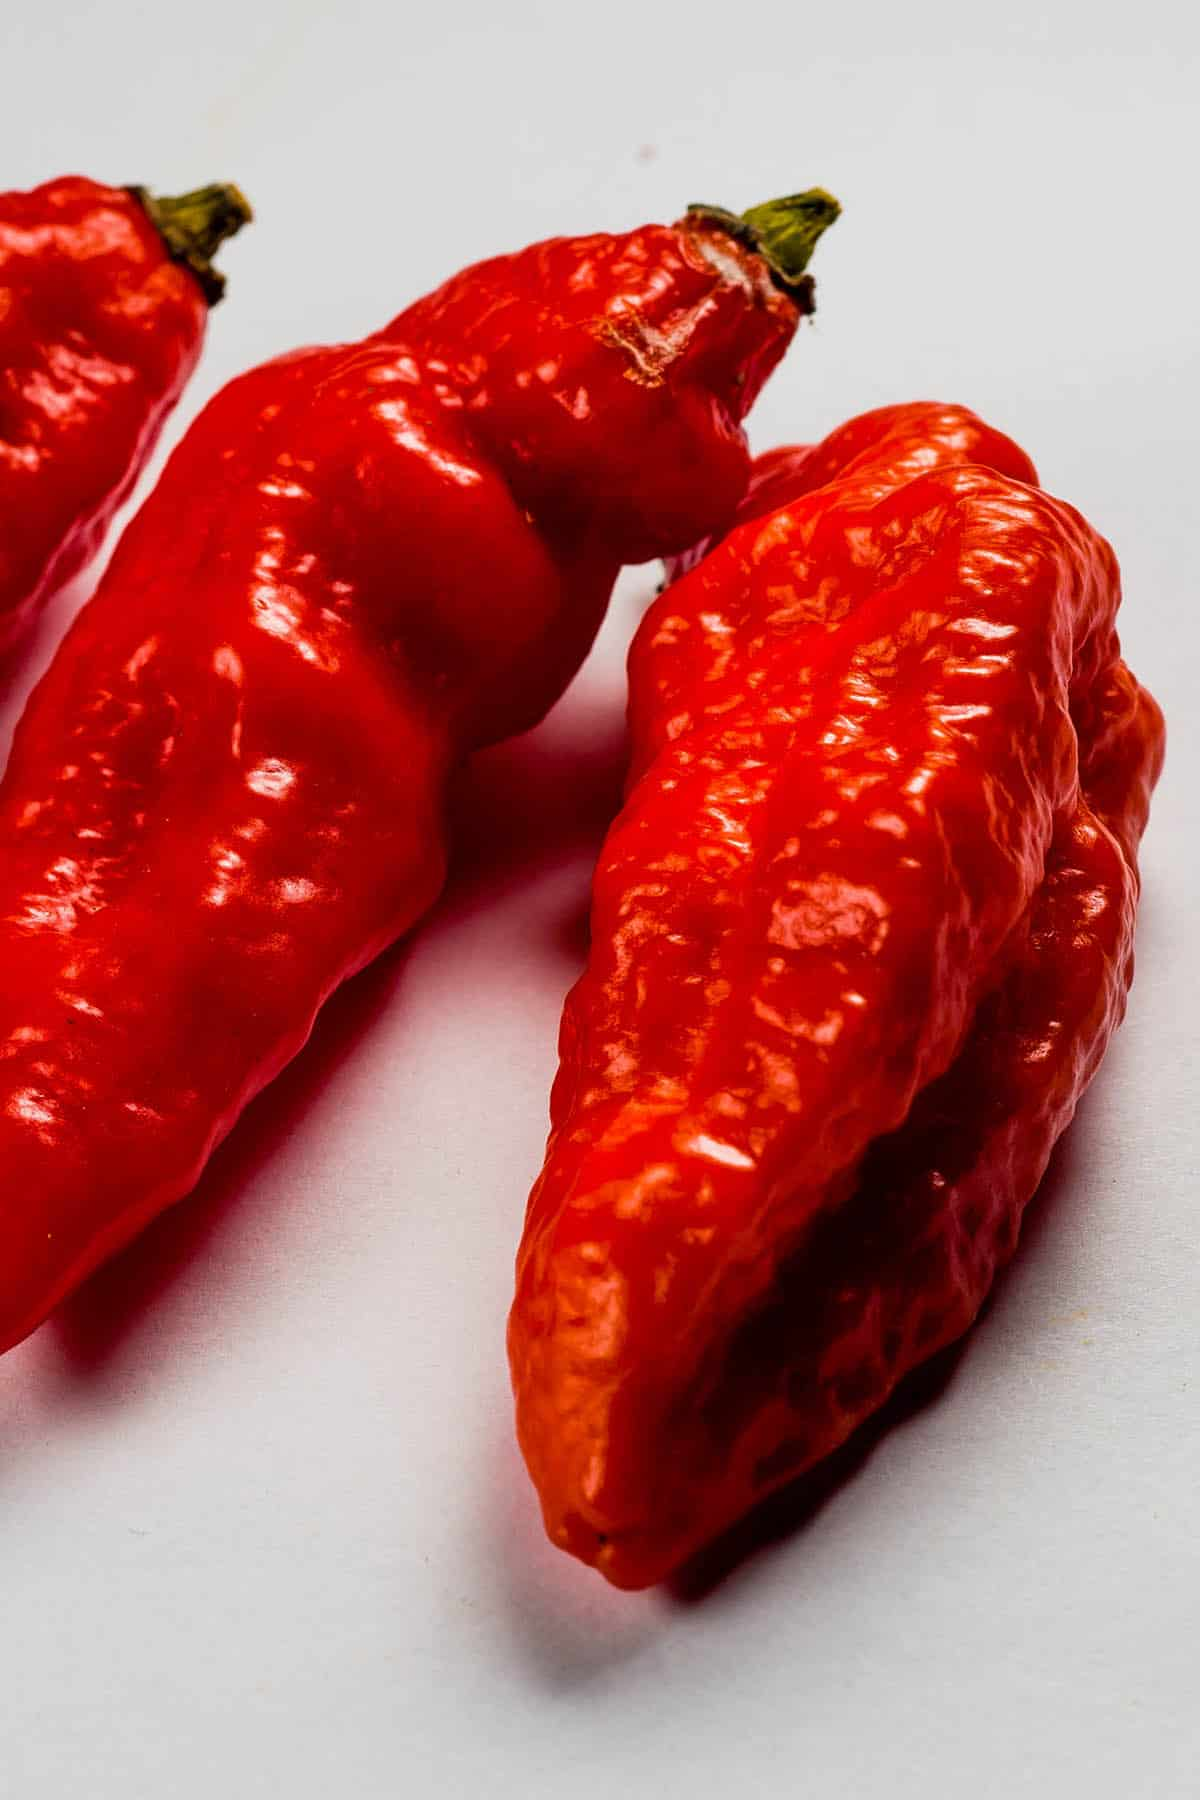 Gibralta / Spanish Naga Chili Peppers